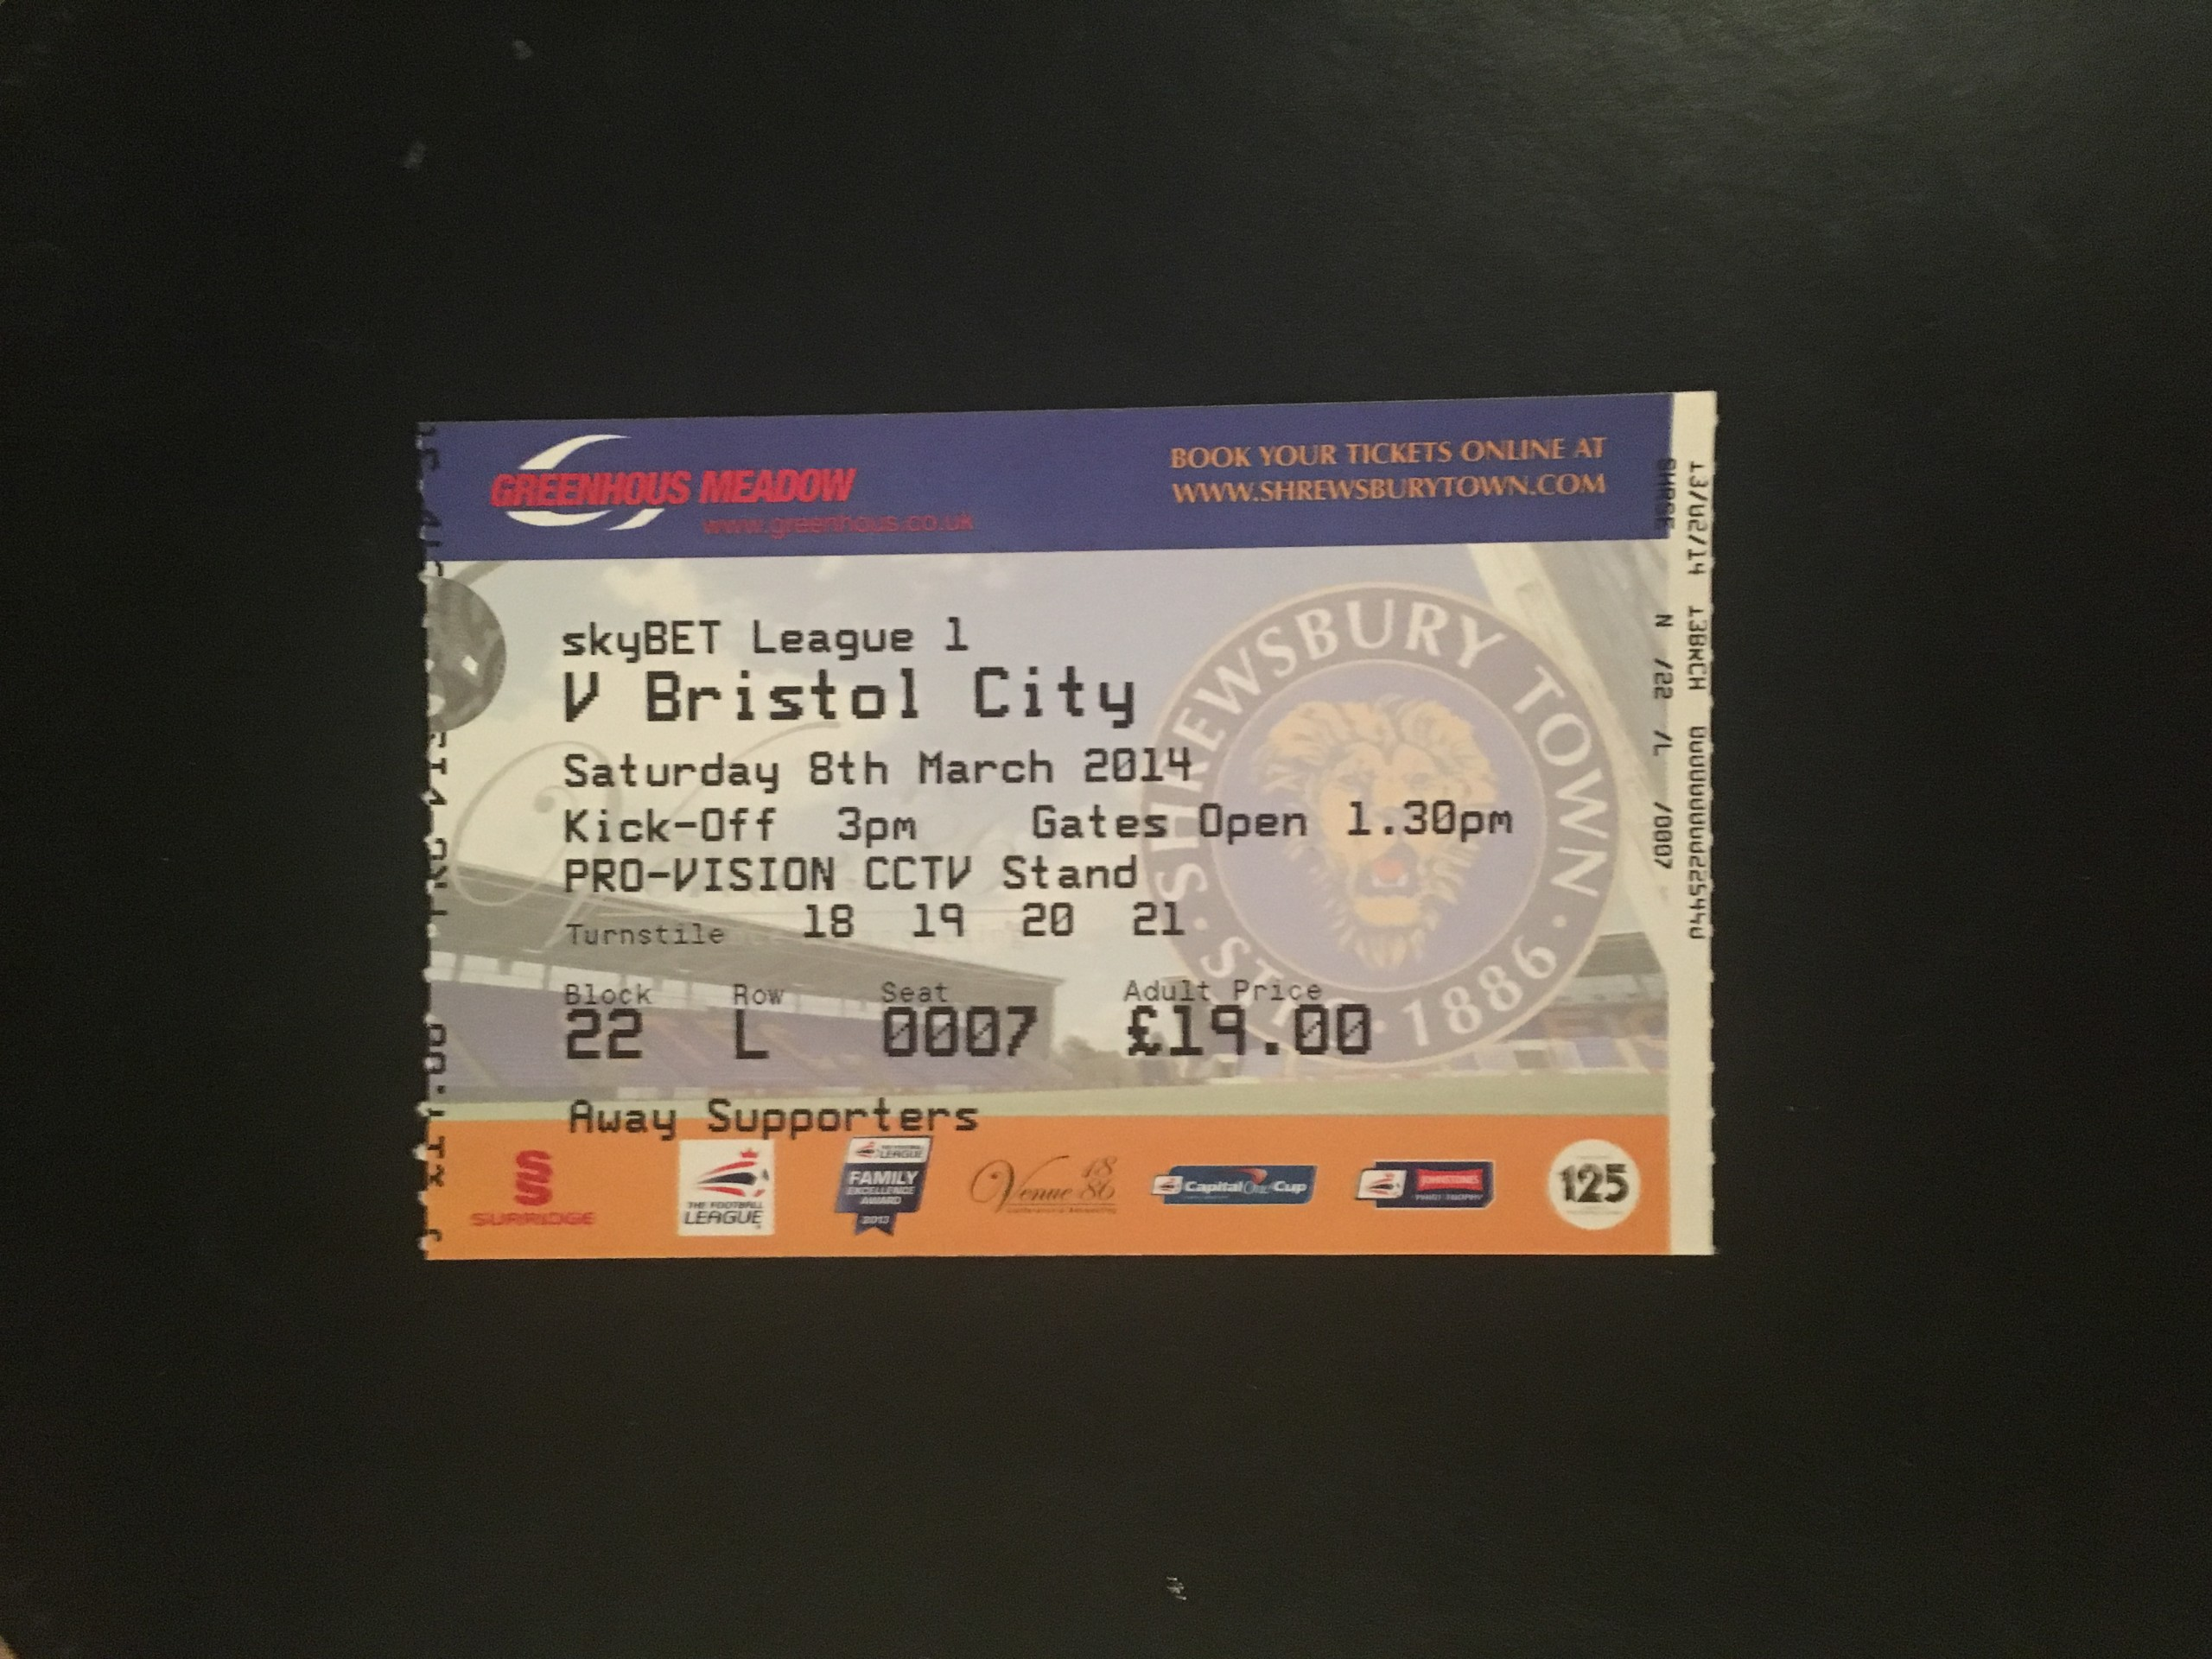 Shrewsbury Town v Bristol City 08-03-2104 Ticket